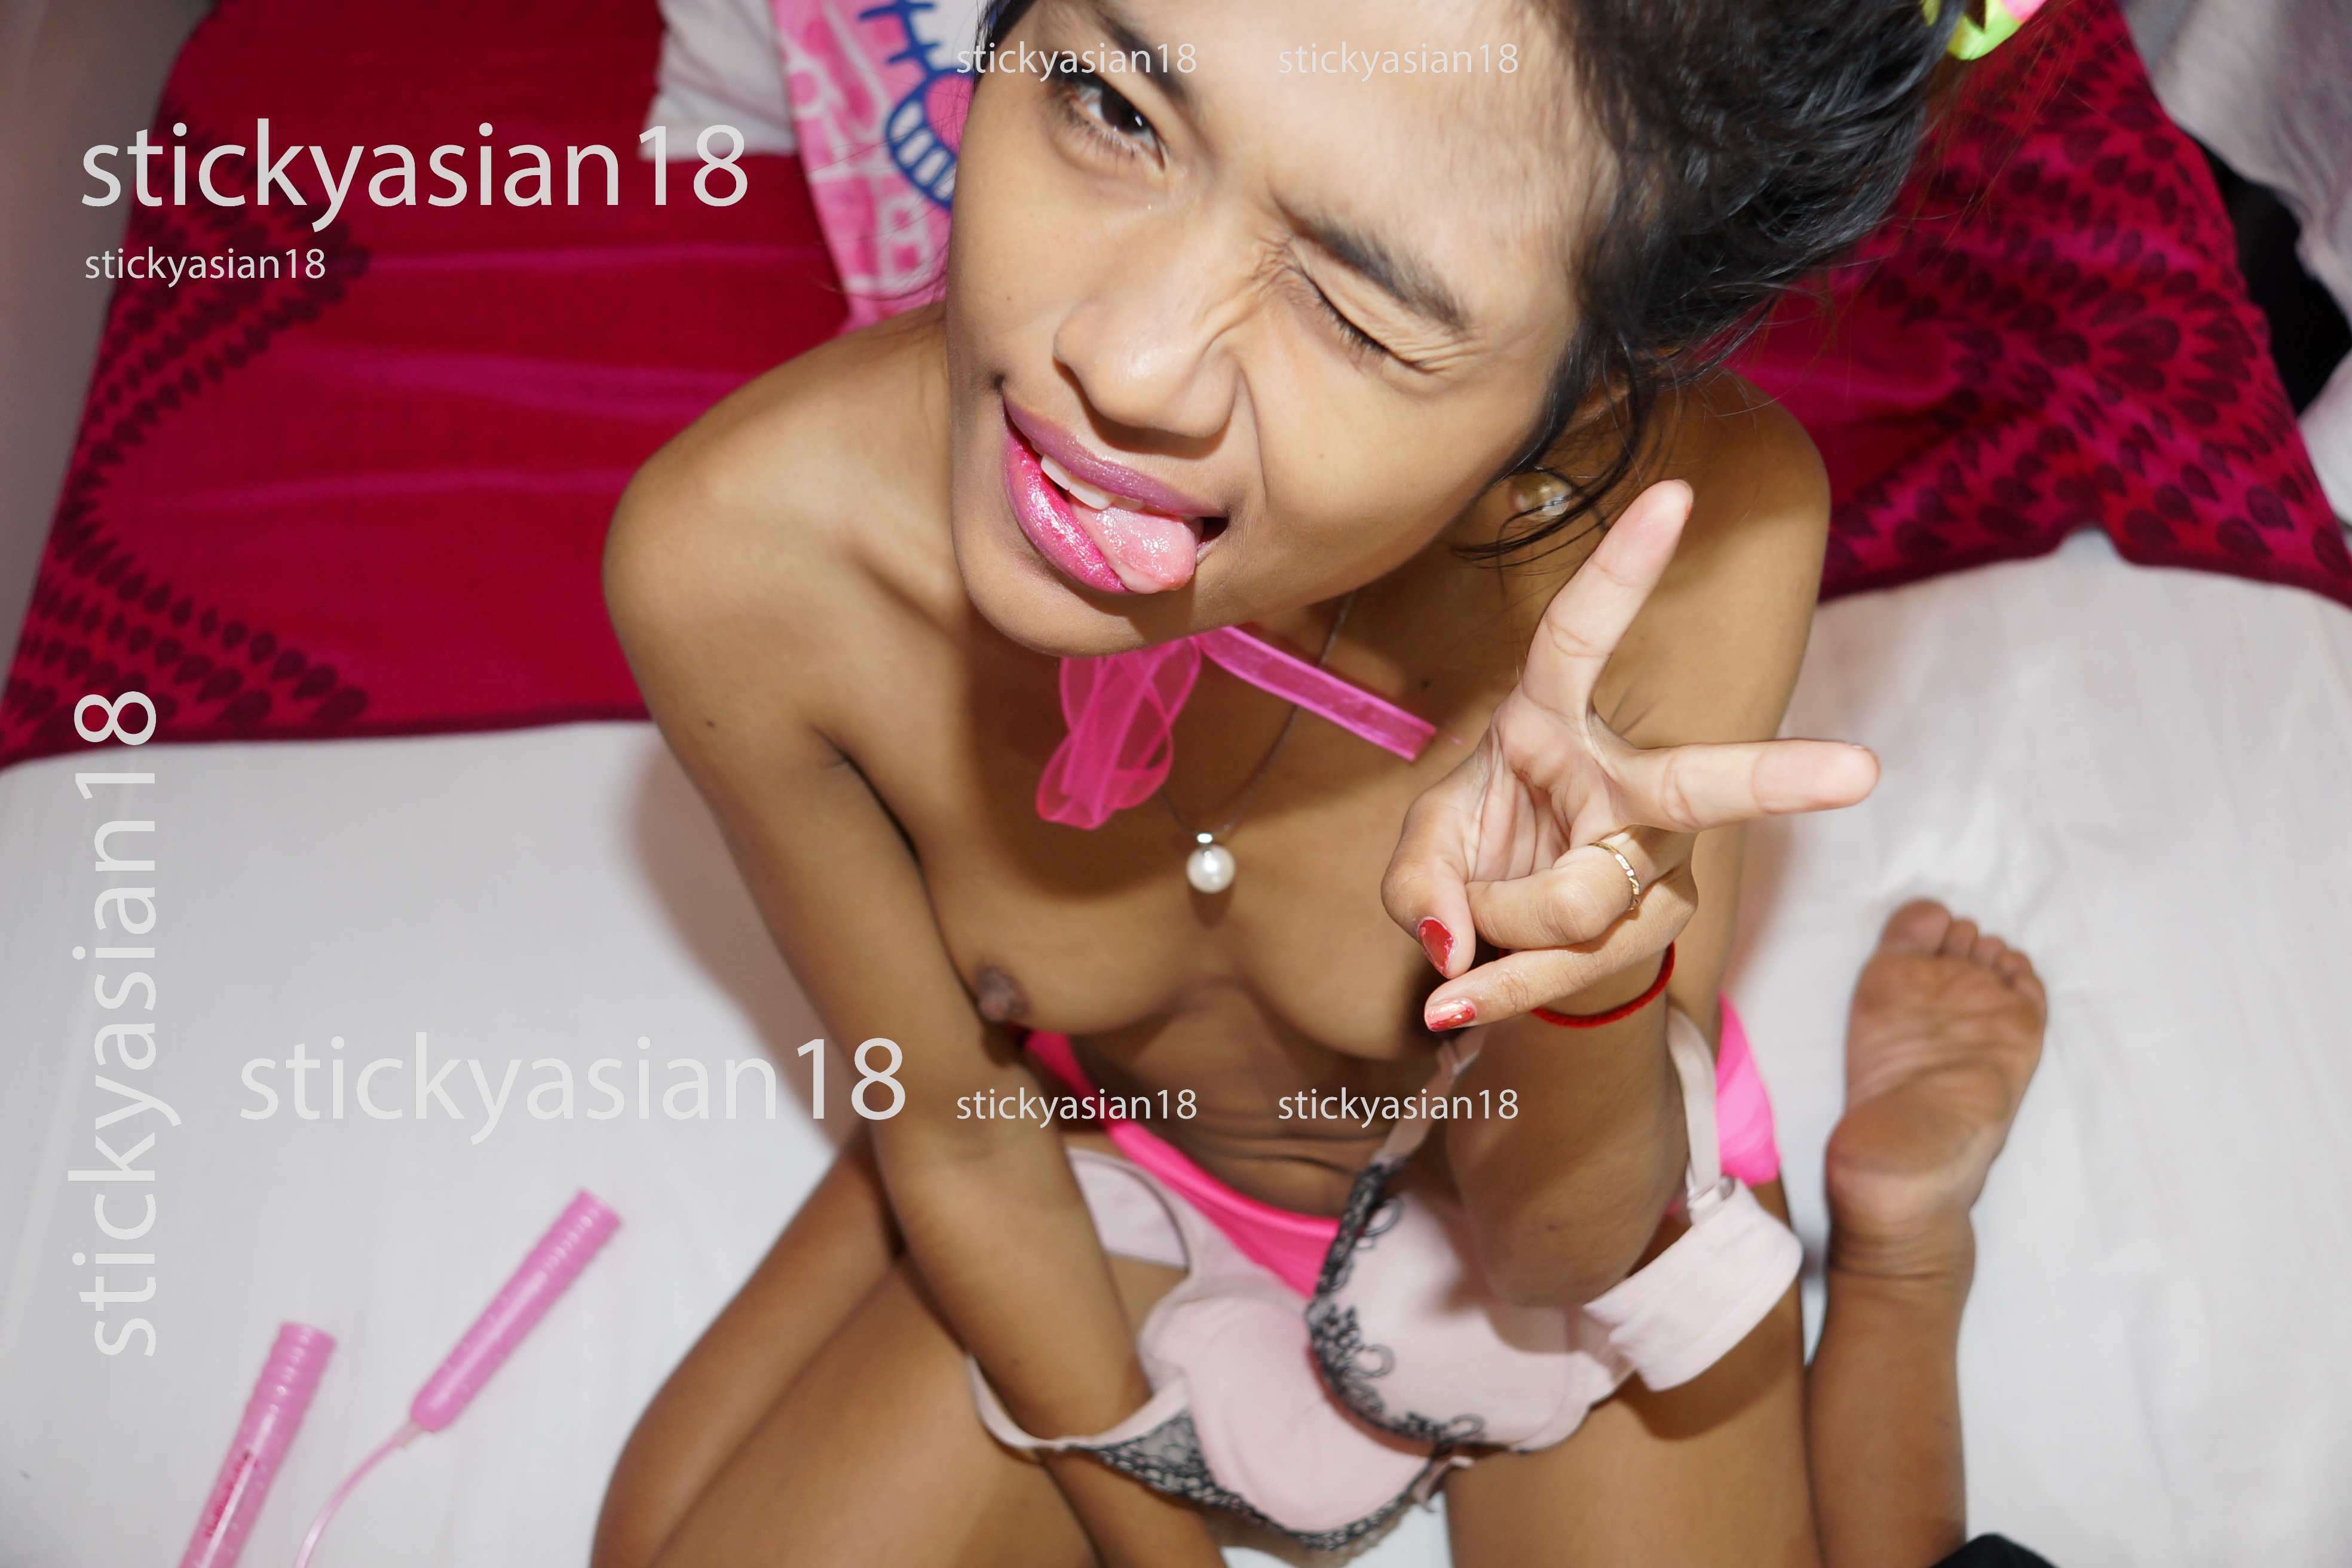 Dee From Sticky Asian 18 Cute Thai Naked Teen Pics - Teens -4881